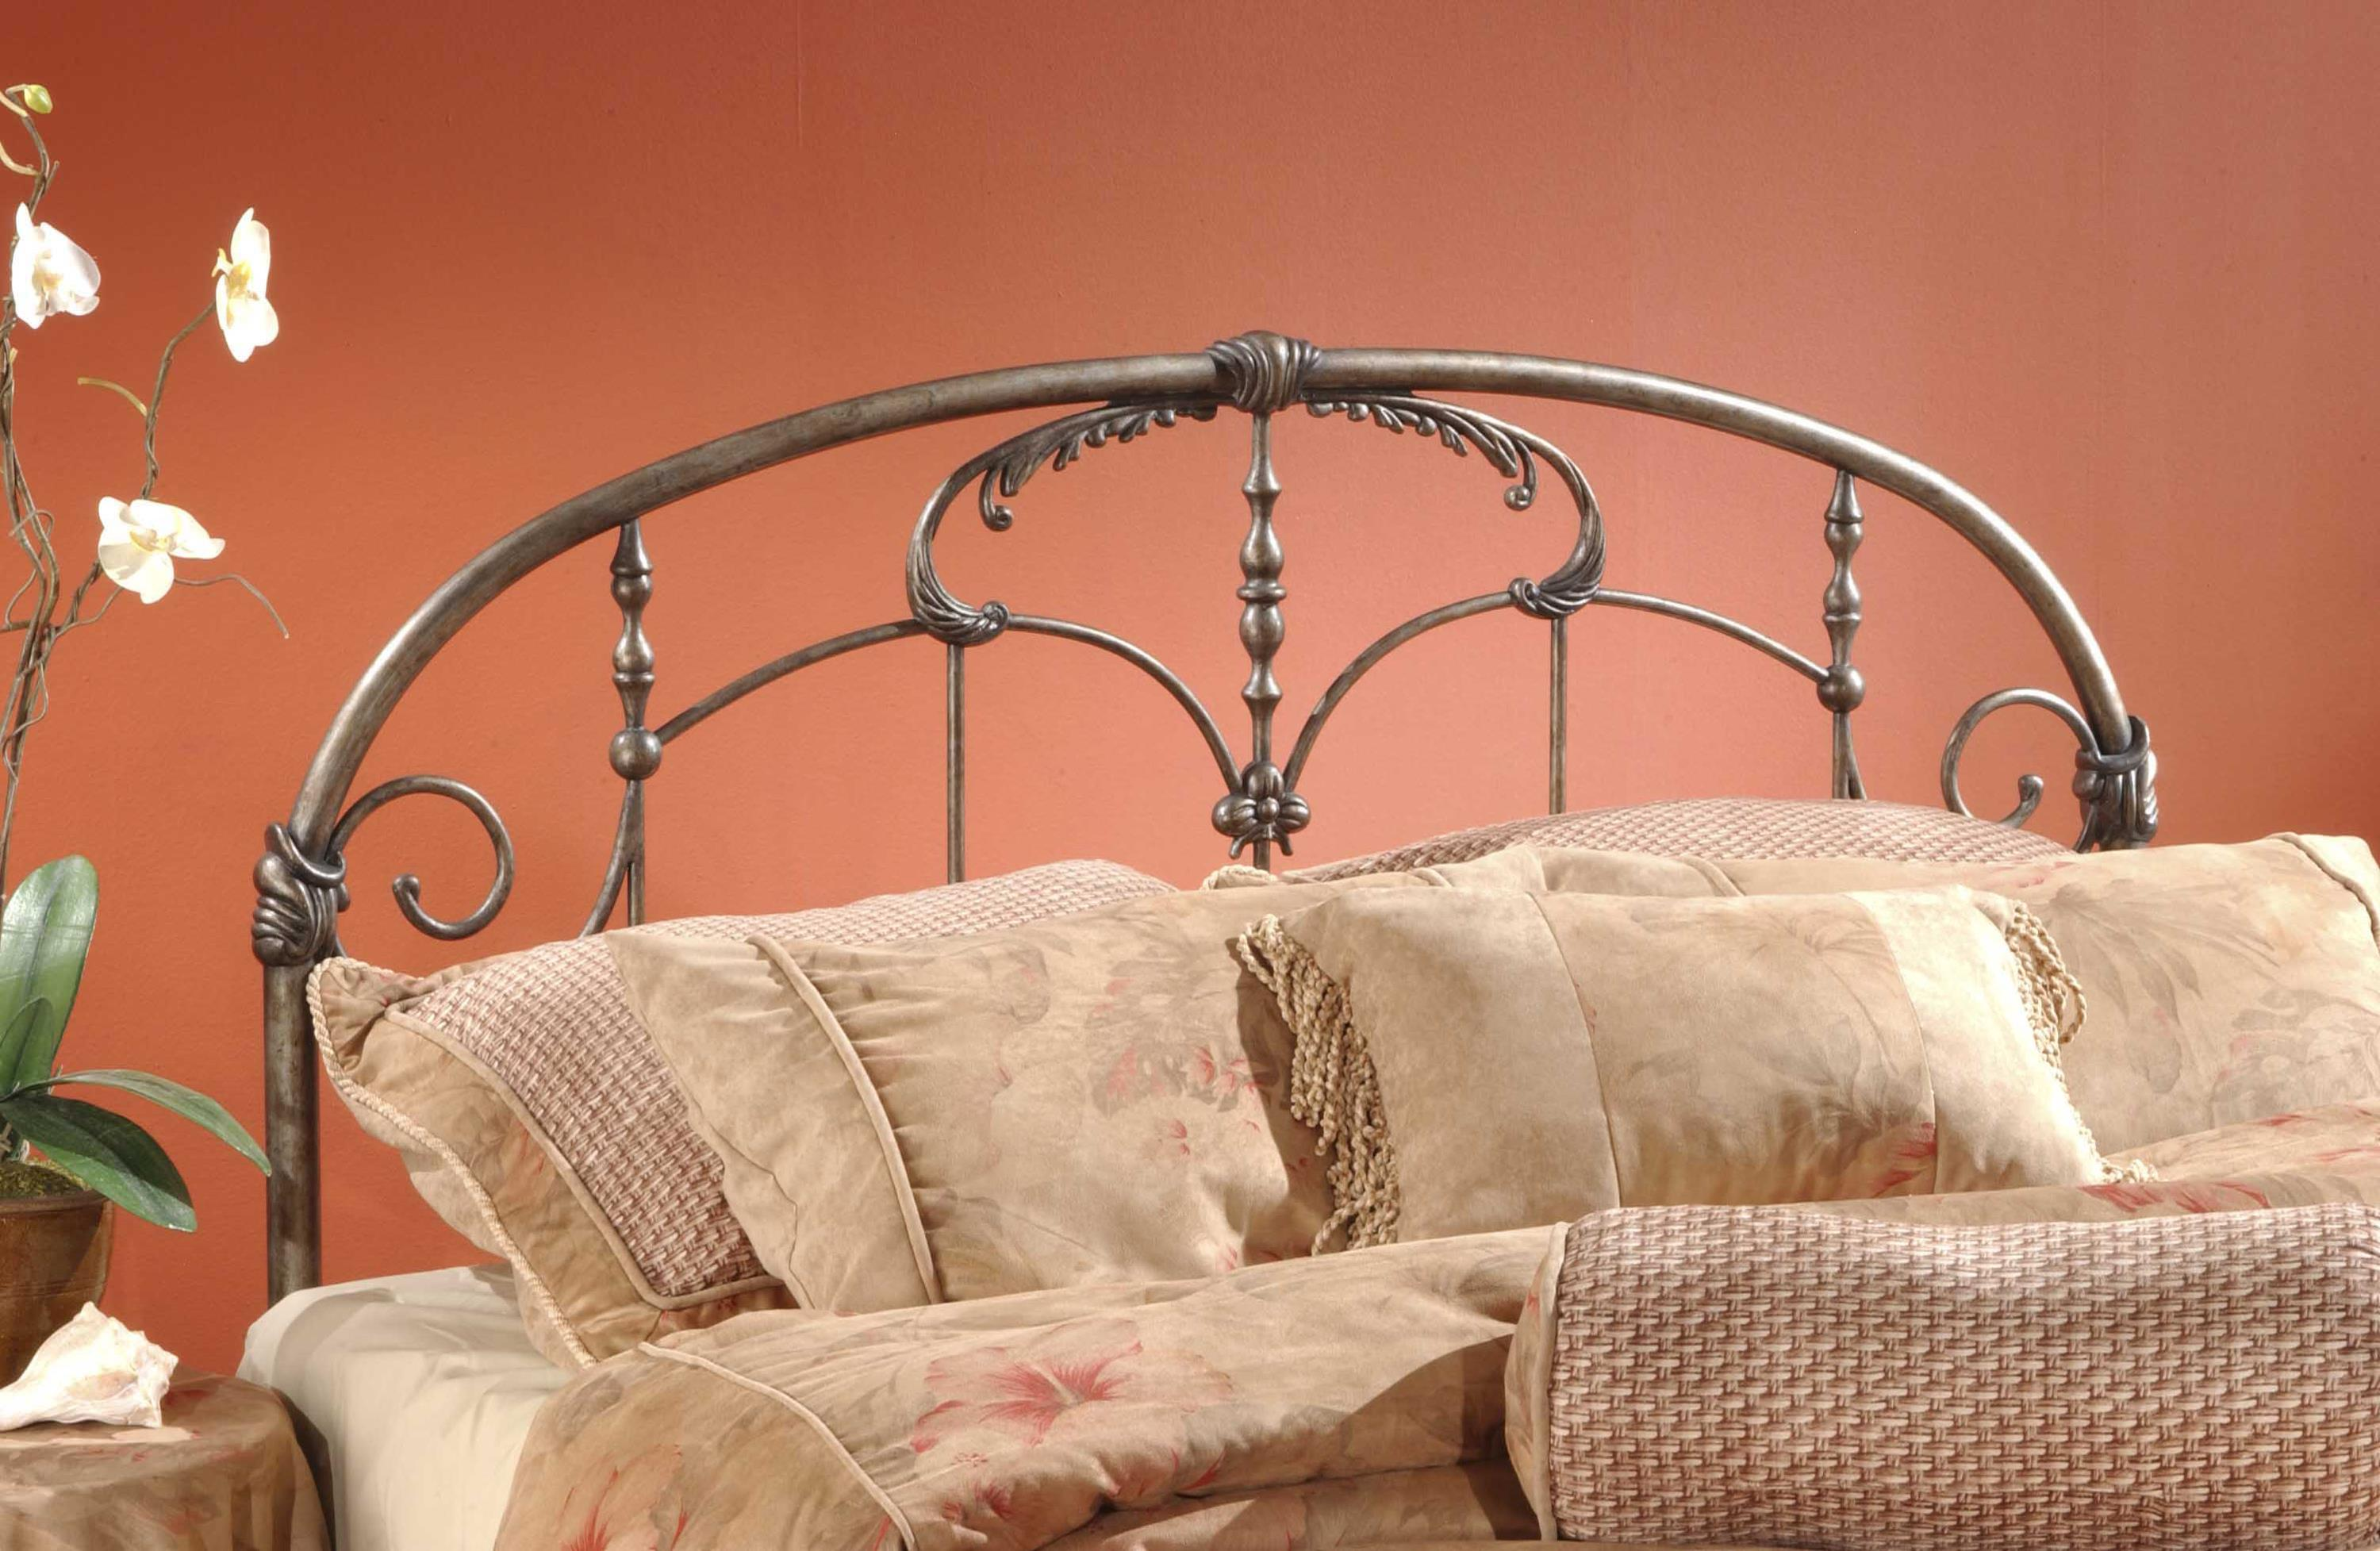 Hillsdale Metal Beds King Headboard with Rails - Item Number: 1293HKR